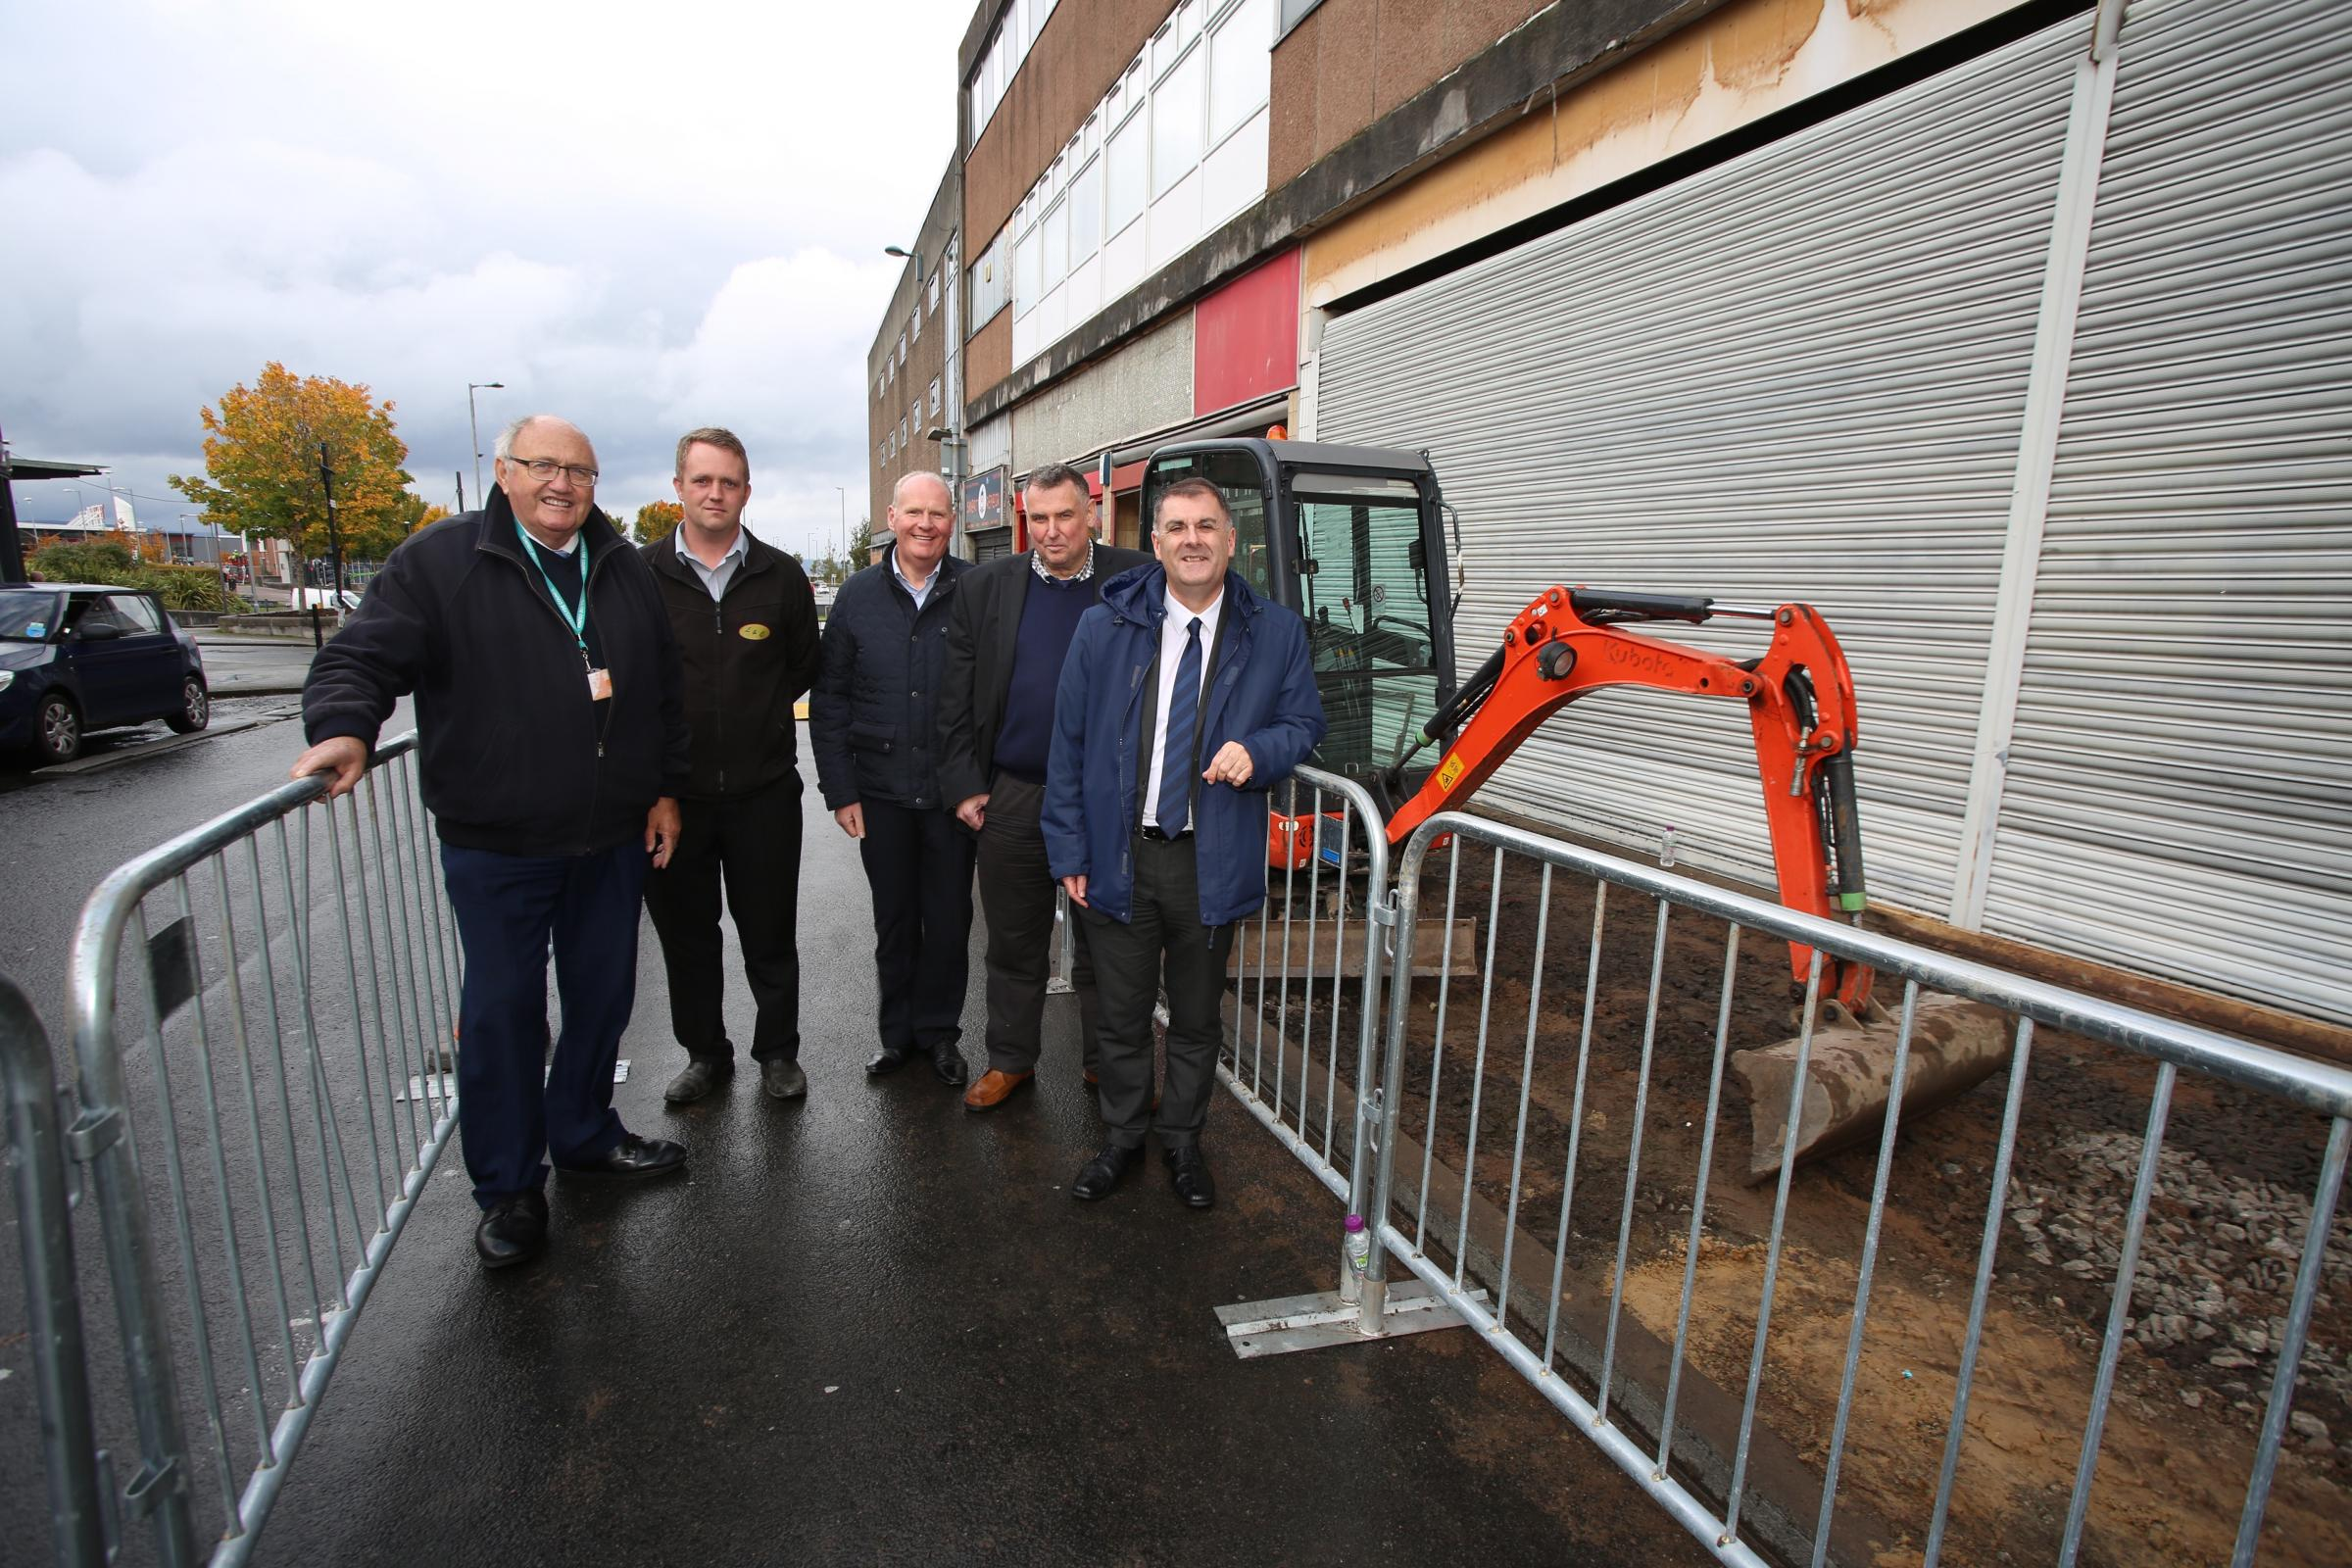 Port Glasgow town centre improvements. Work has started on pavement upgrades on Princes Street with roads also being resurfaced at a later date. Pictured from left, Councillor David Wilson, Steven Gray, from contractor Landscapes and Contracts (L&C),